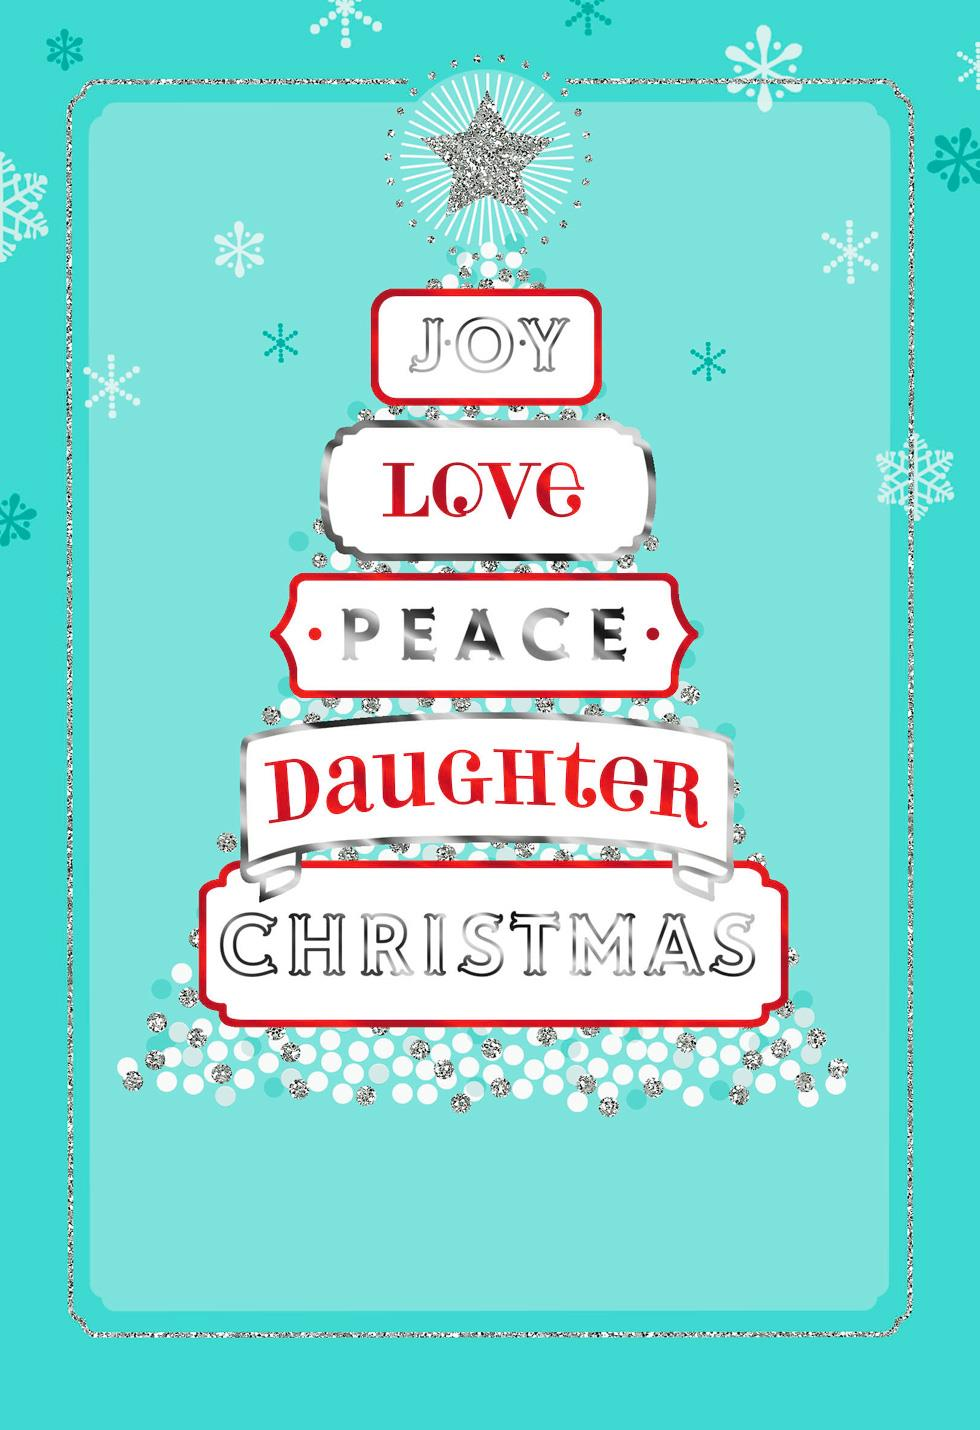 Joy Love Peace Christmas Card for Daughter  Greeting